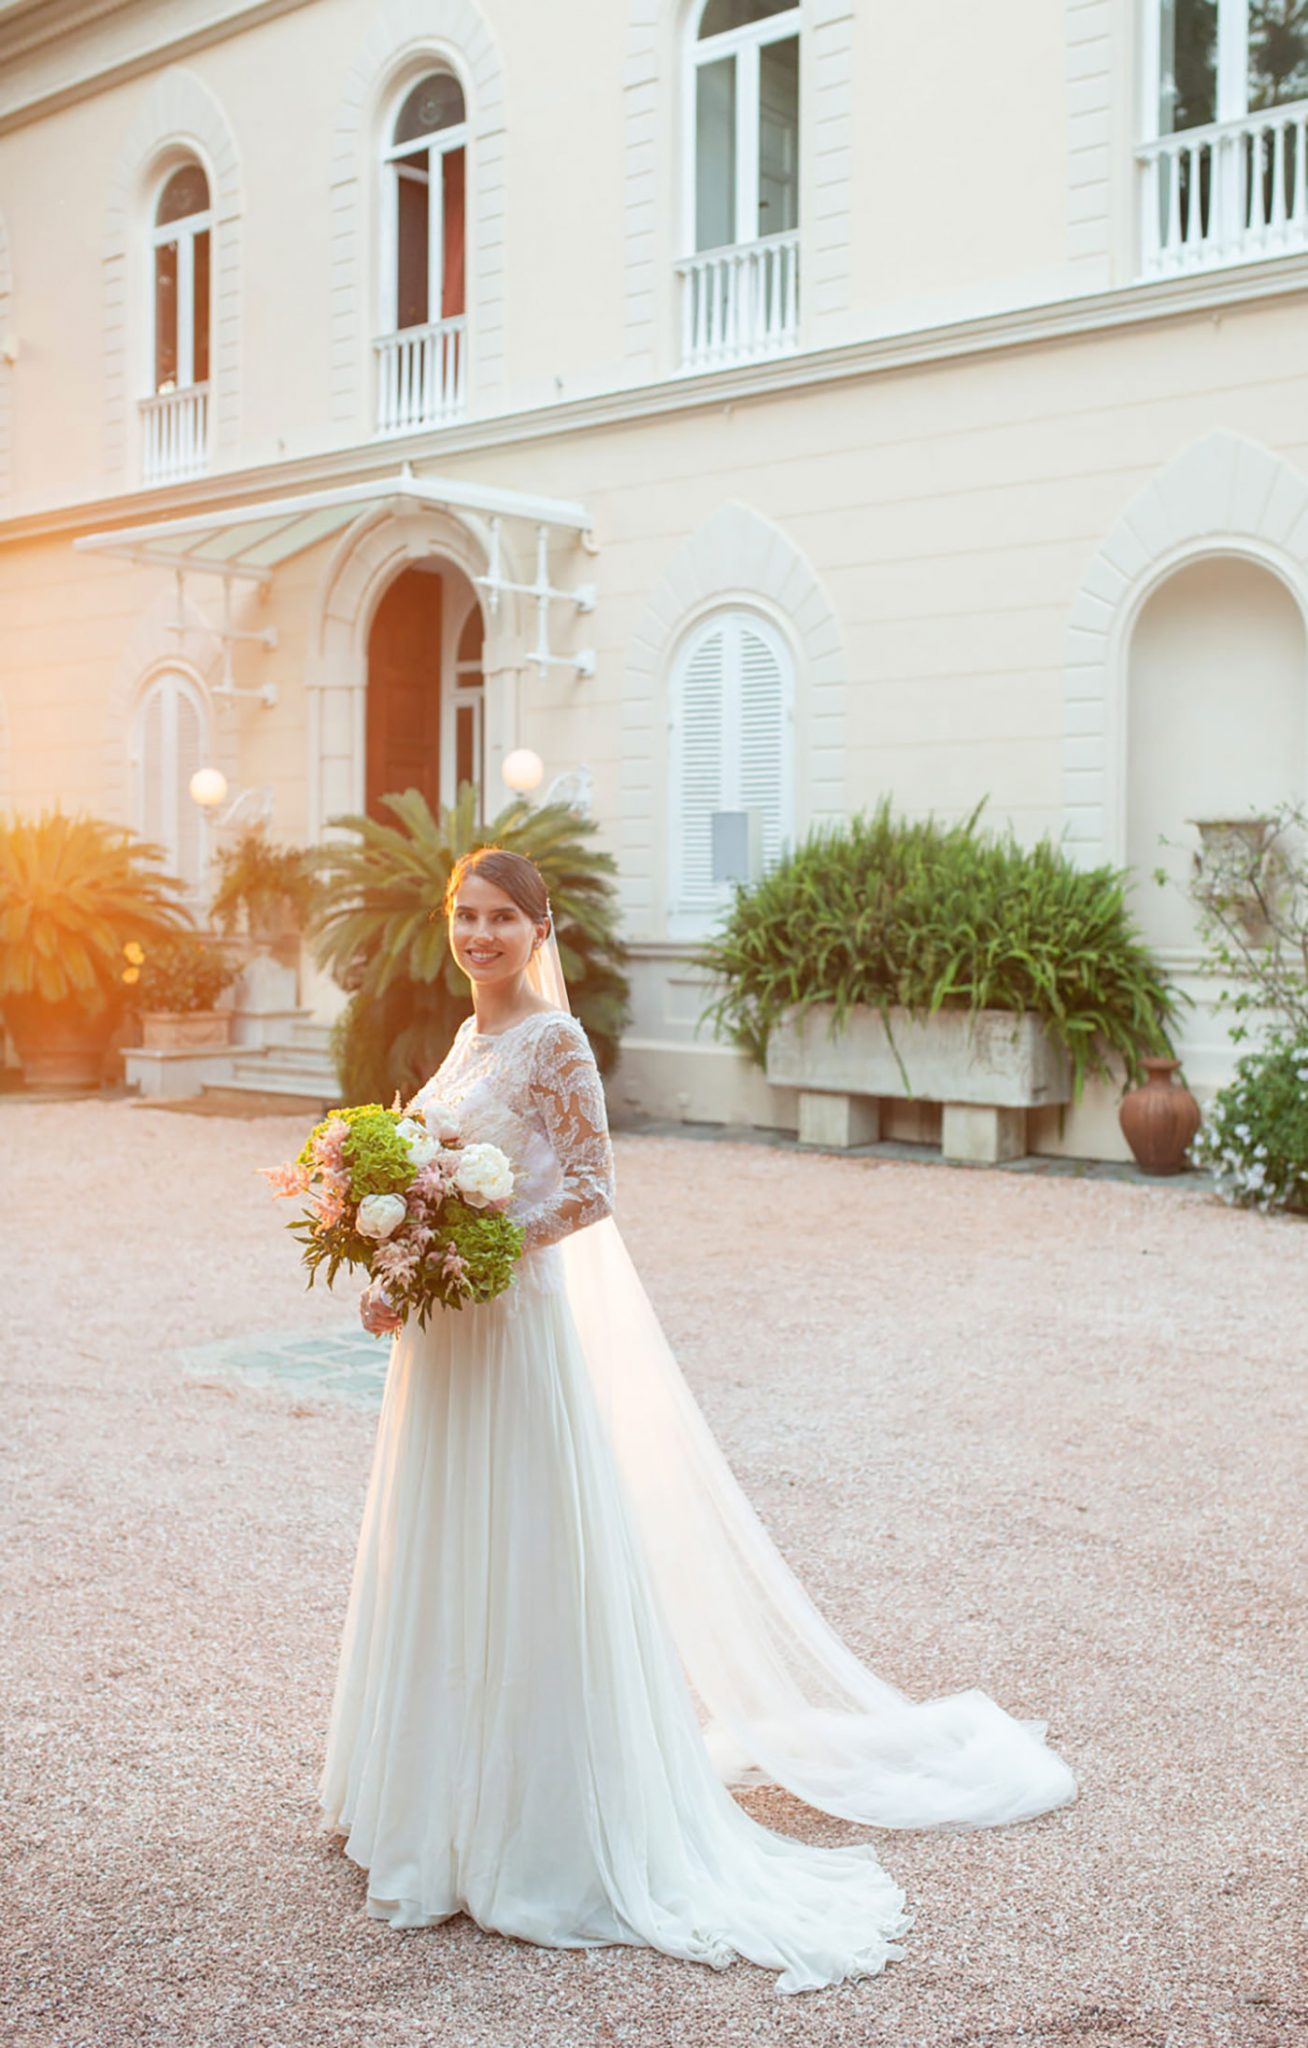 Villa Astor Wedding Venue